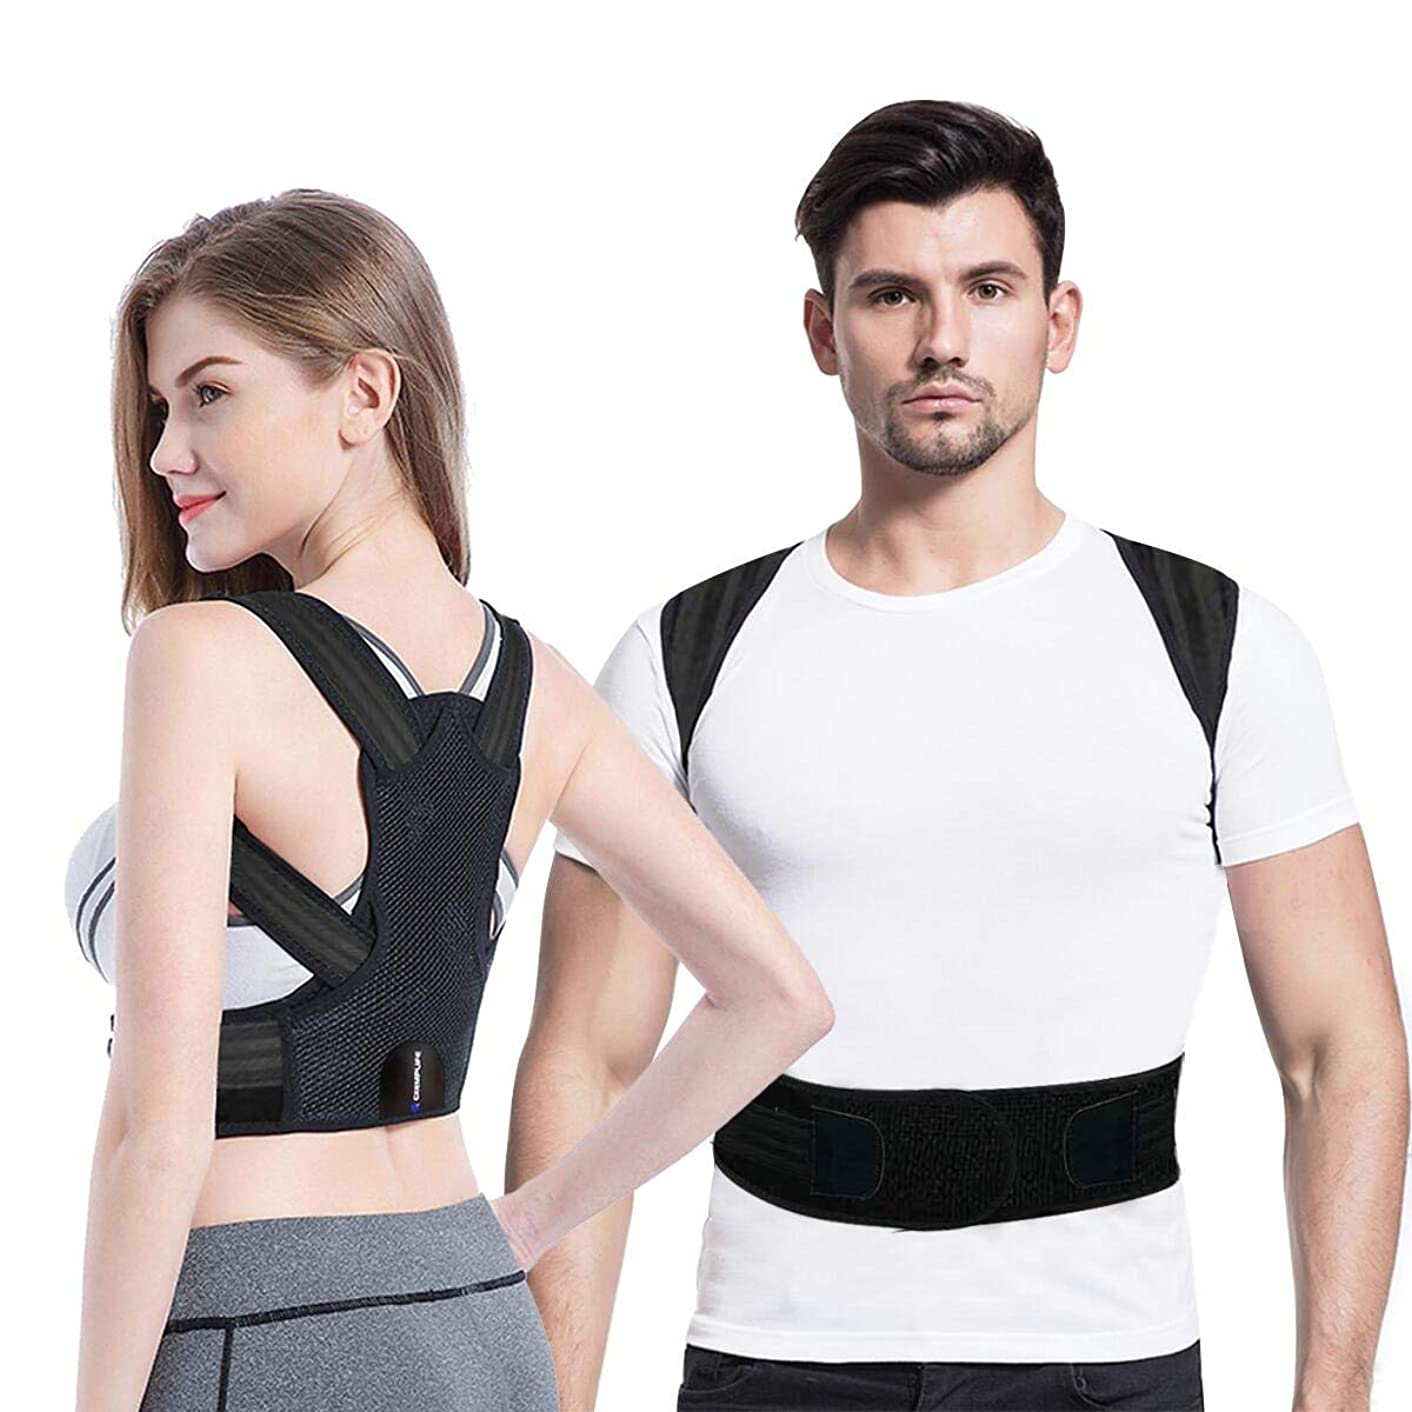 Posture Corrector for Women and Men,Exemplife Adjustable Back Brace Provides Lumbar Support,Prevent Slouching and Provide Back Pain (XL(36